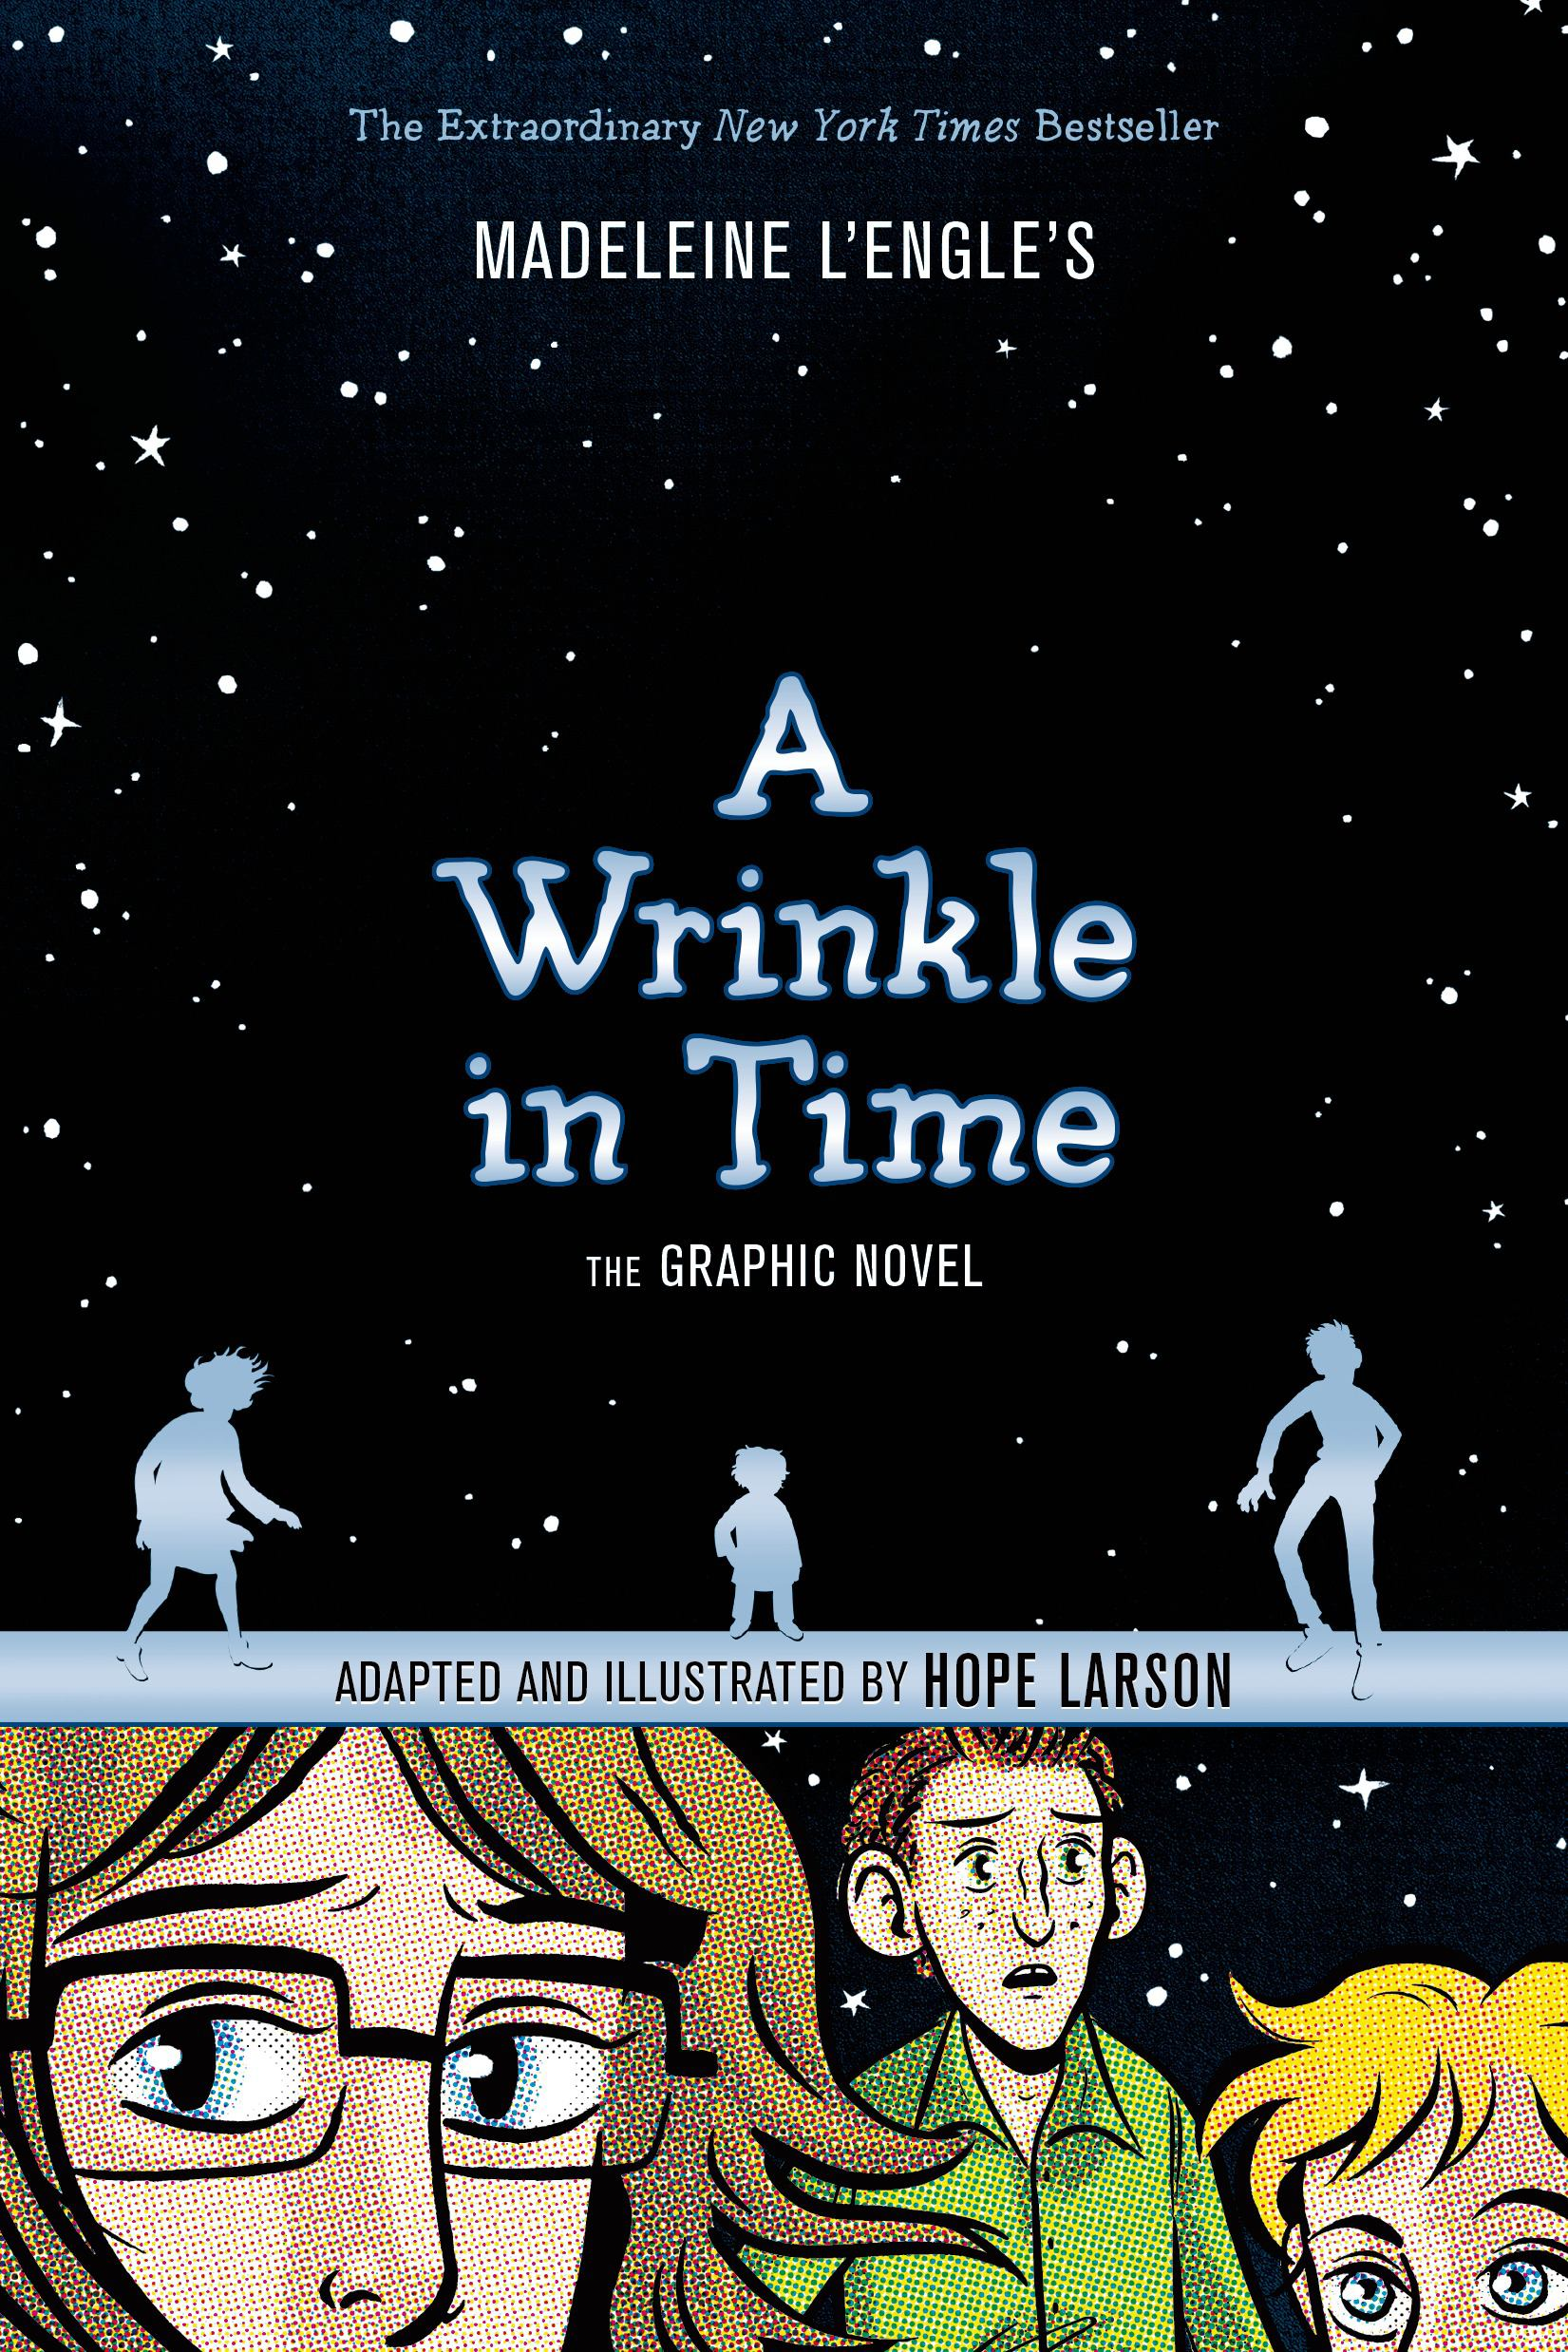 A Wrinklle in Time: The Graphic Novel